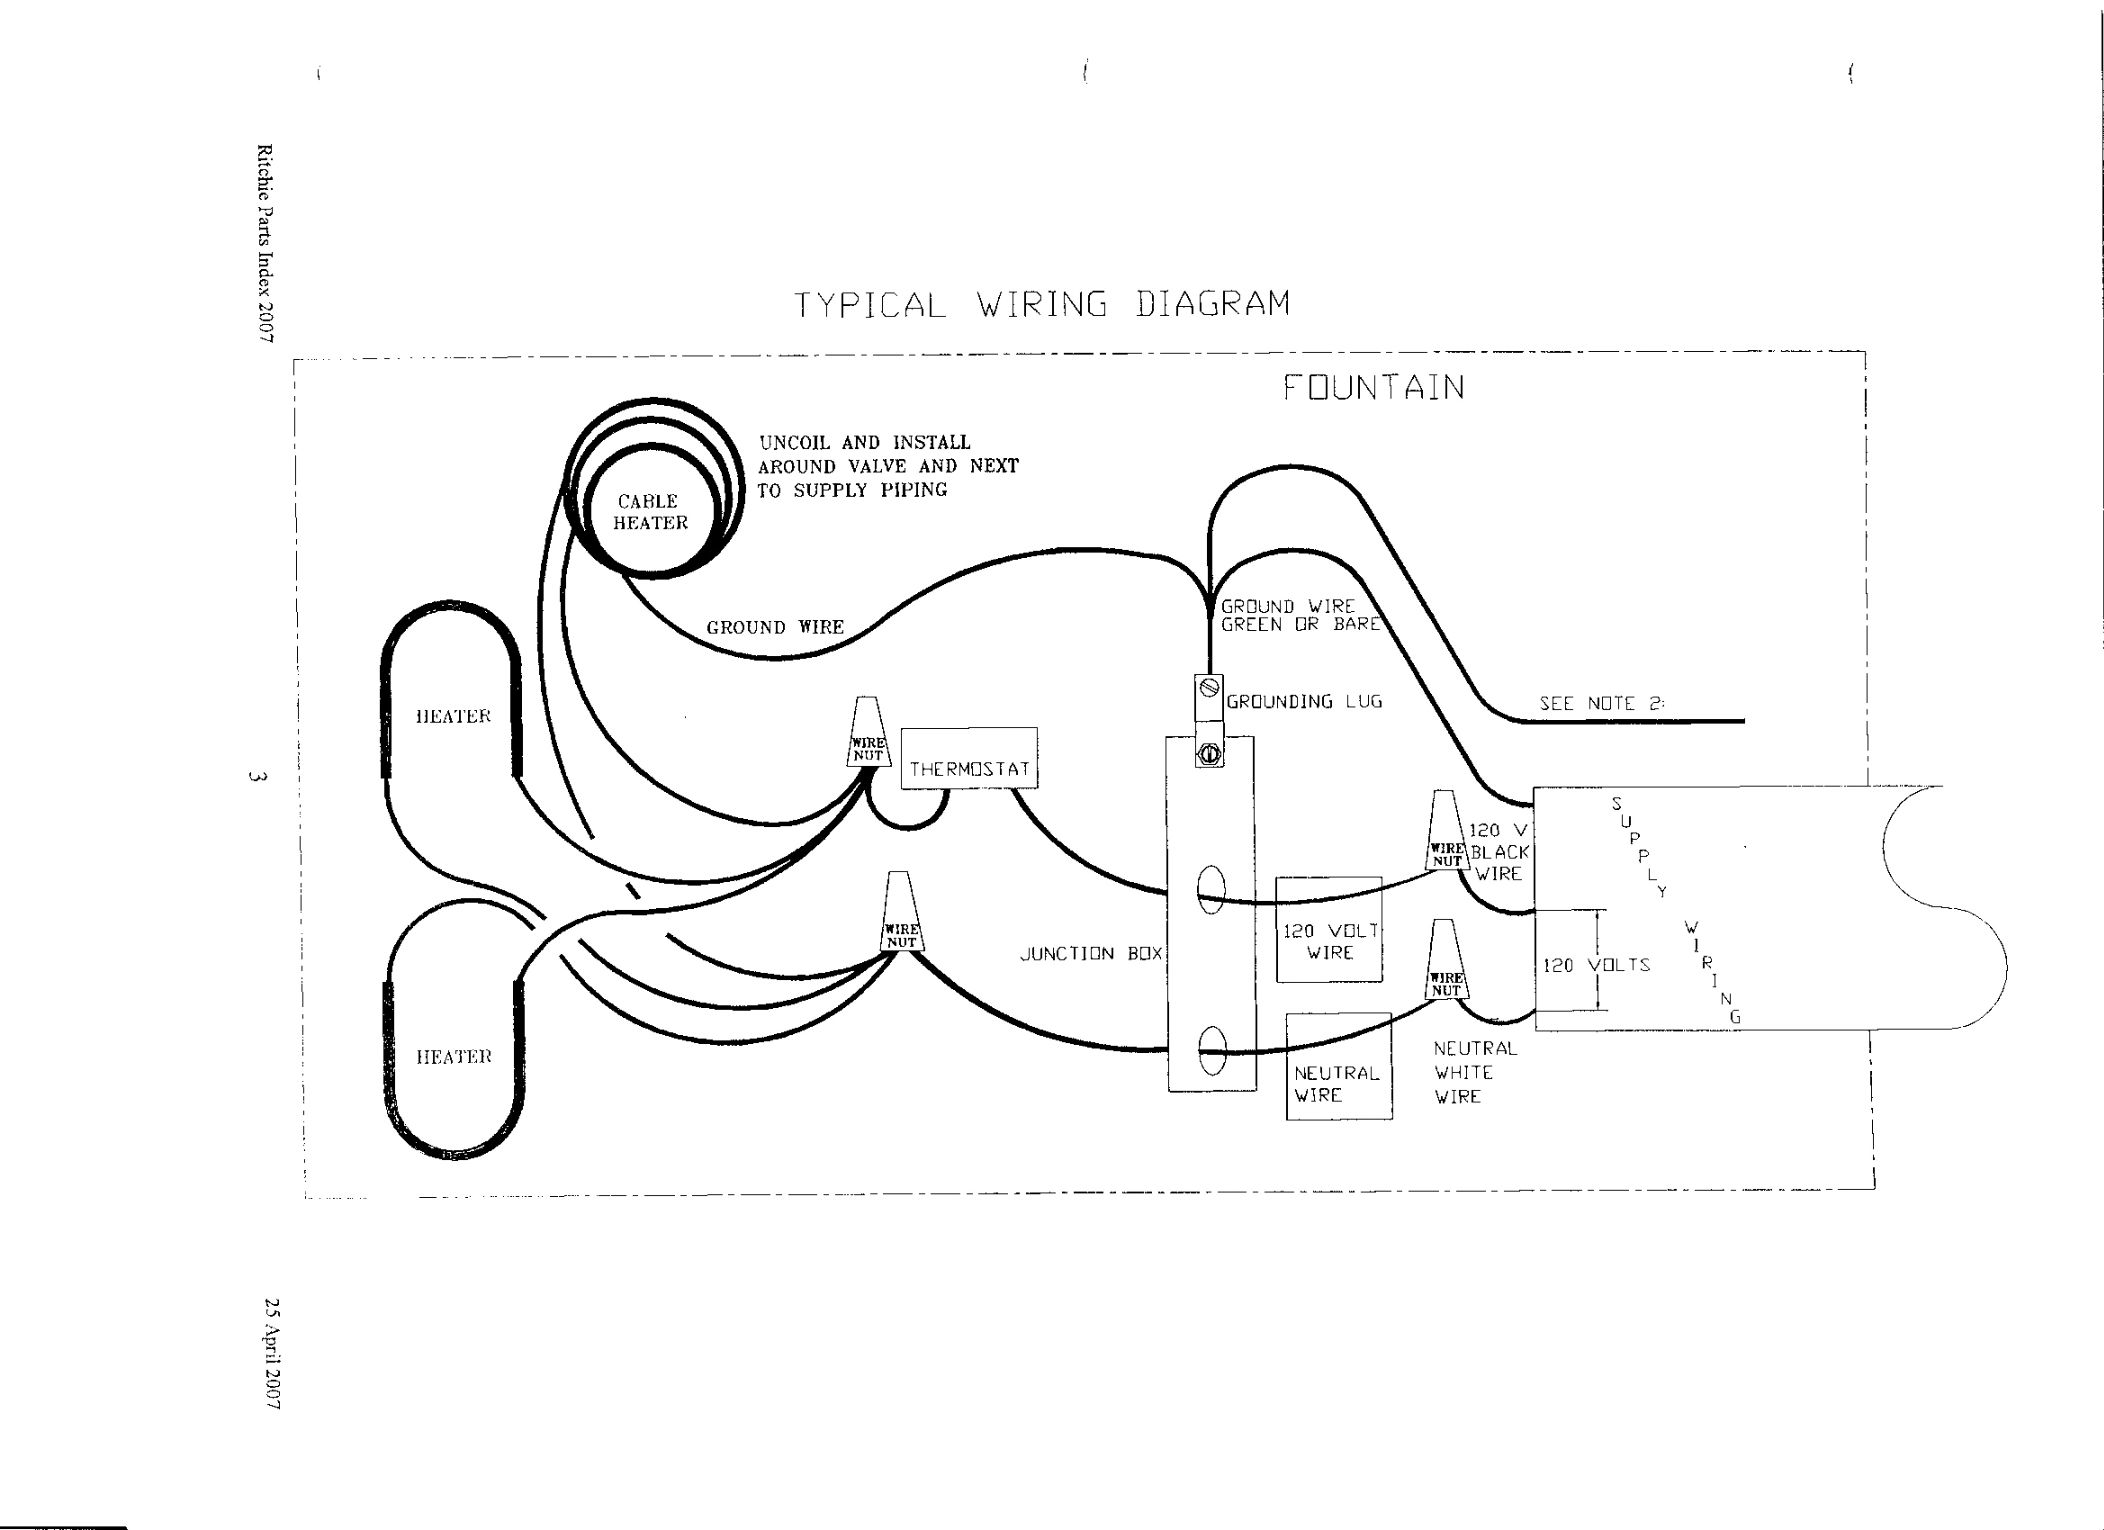 Typical Wiring Diagram typical wiring diagram for waterers and fountains ritchie waterer wiring diagram at bayanpartner.co